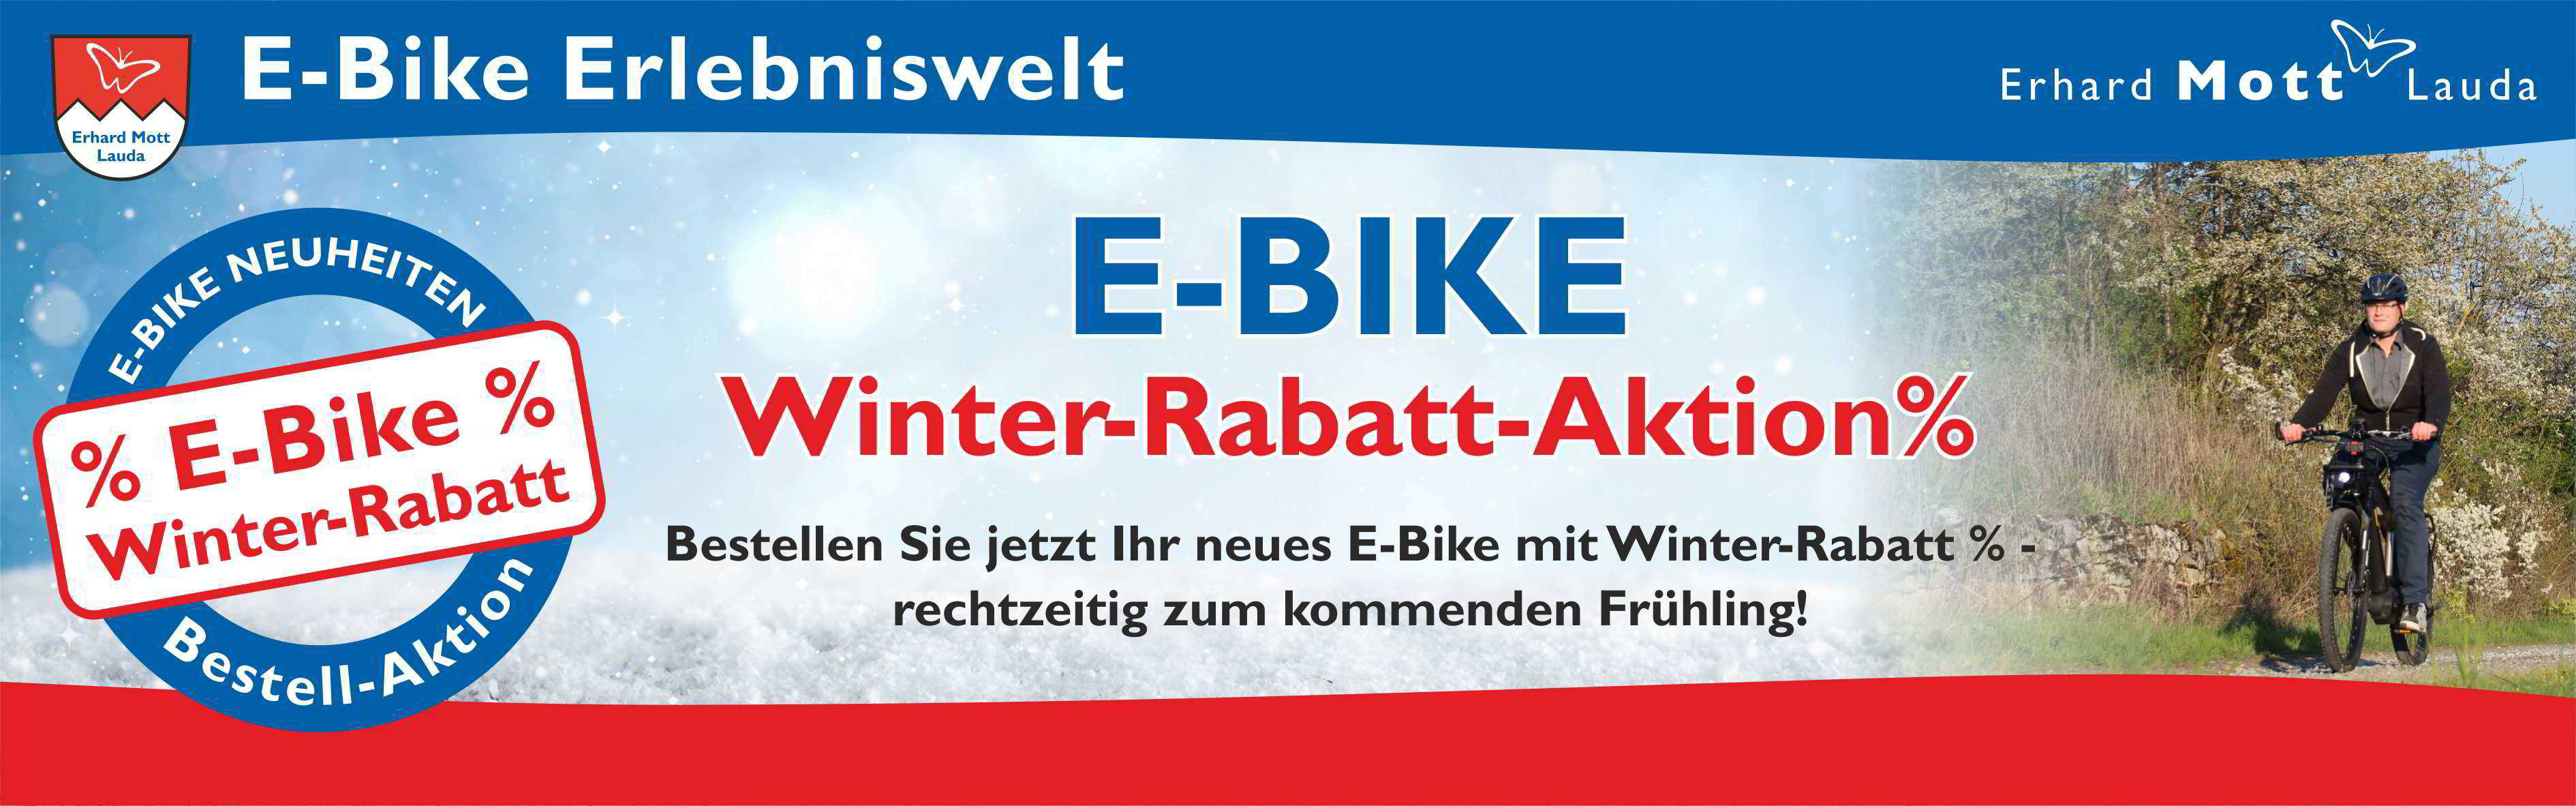 hier geht es zur E-Bike Winter-Rabatt-Aktion %